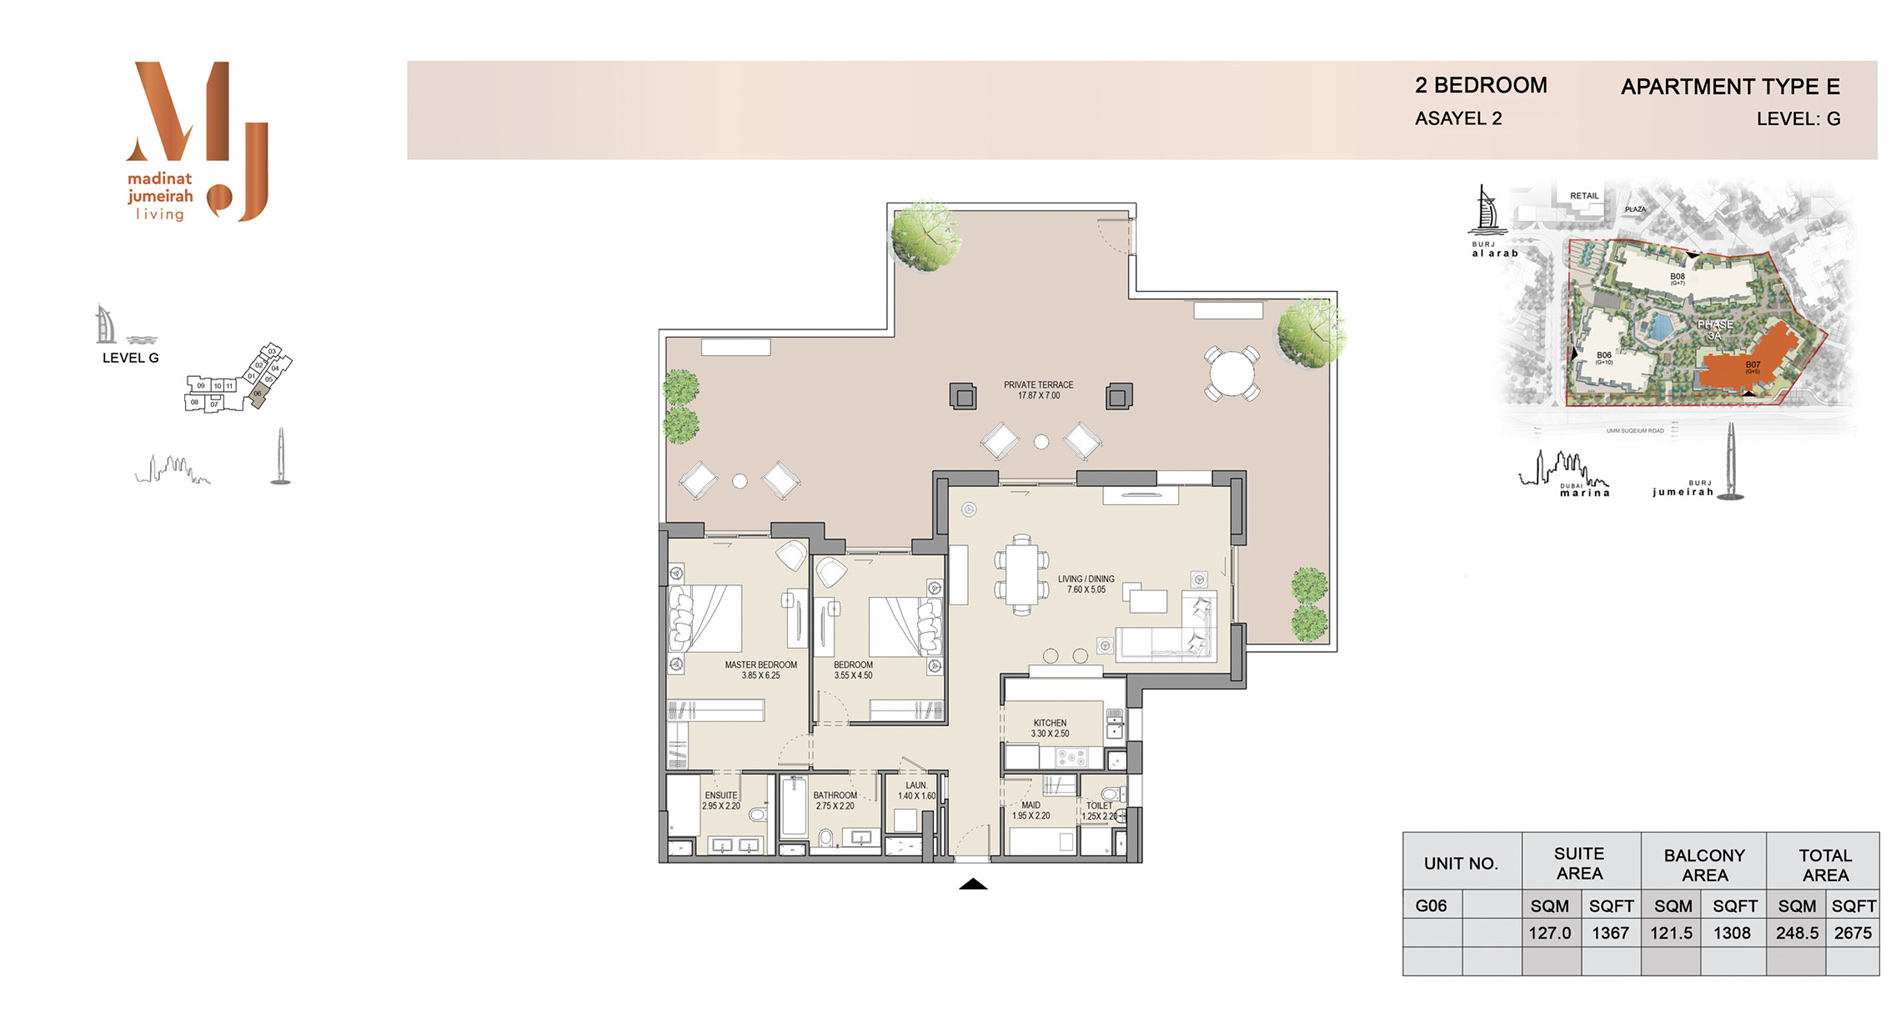 Building 2, 2 Bed Type E Level G, Size 2675    sq. ft.